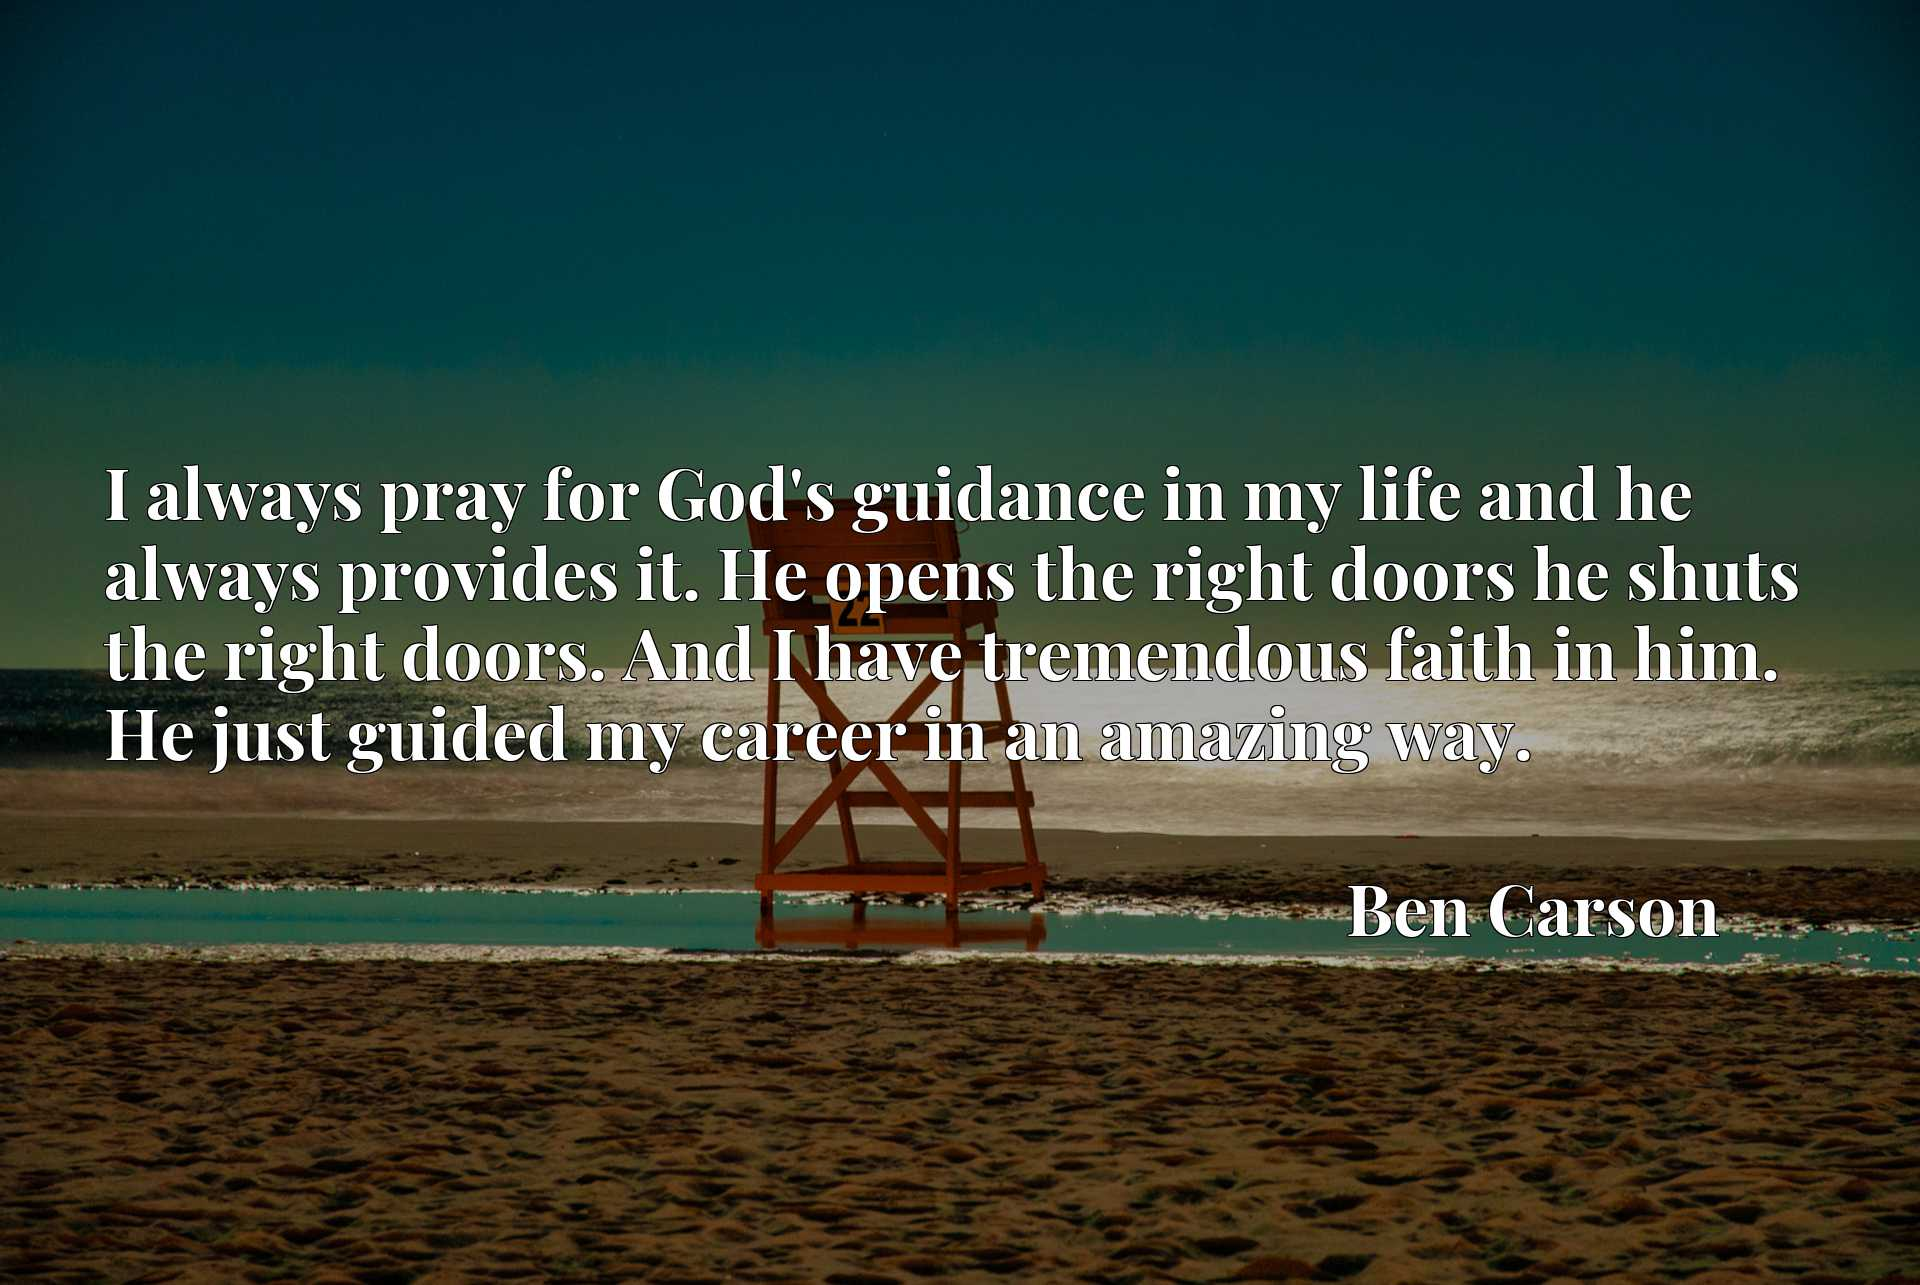 I always pray for God's guidance in my life and he always provides it. He opens the right doors he shuts the right doors. And I have tremendous faith in him. He just guided my career in an amazing way.